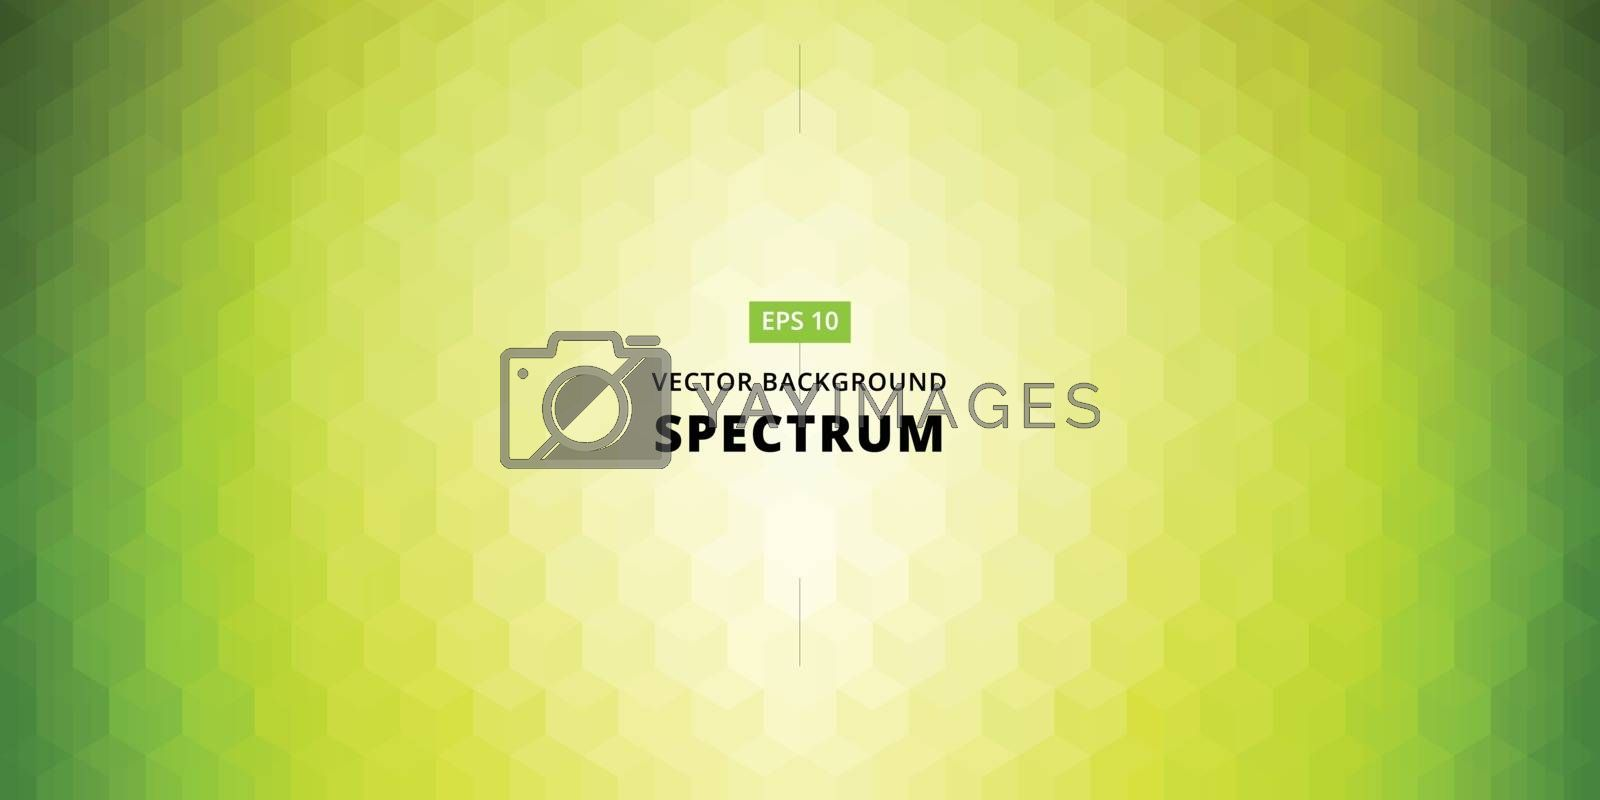 Spectrum geometric background made of triangles. green color background vector